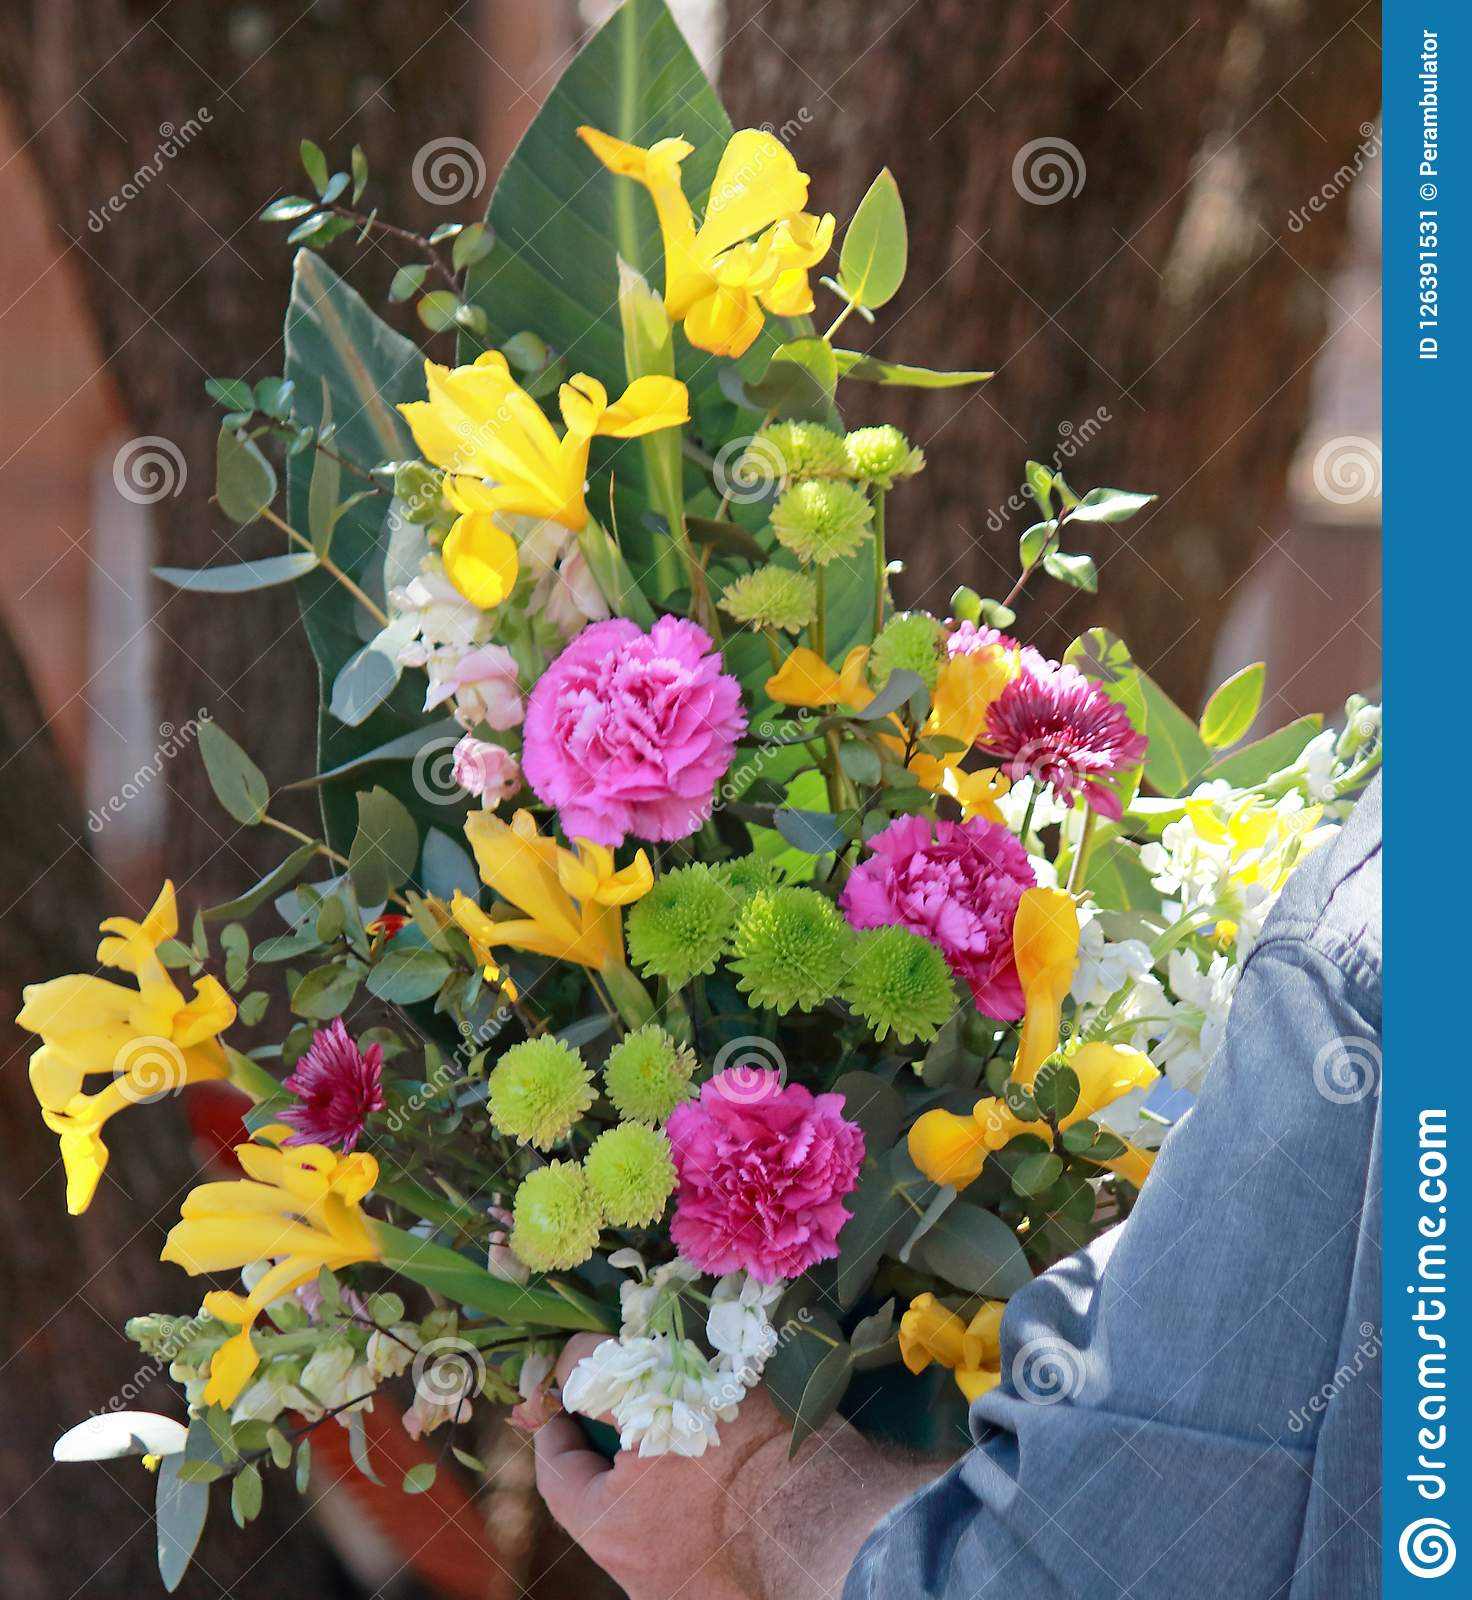 Pink And Yellow Flower Arrangement Held By A Person Stock Image